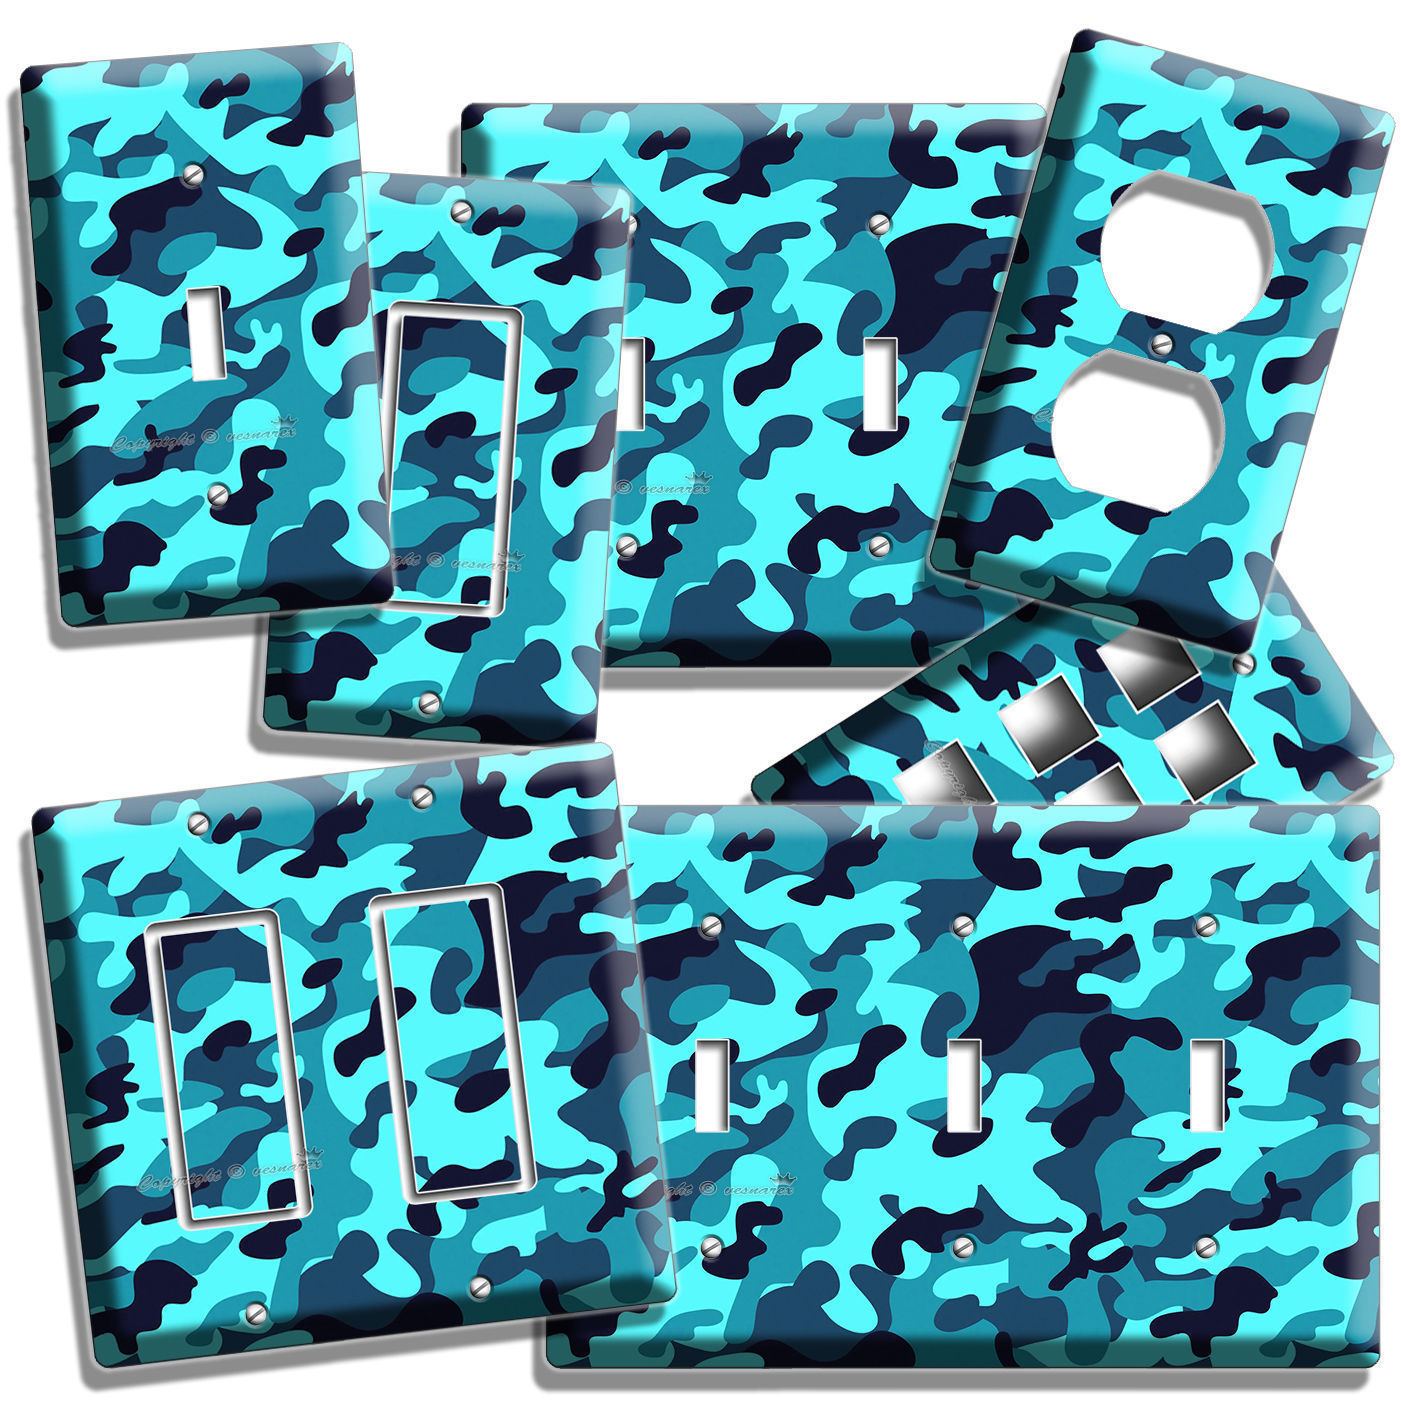 Primary image for BLUE MILITARY NAVY CAMO CAMOUFLAGE LIGHT SWITCH OUTLET WALL PLATE COVER MANCAVE